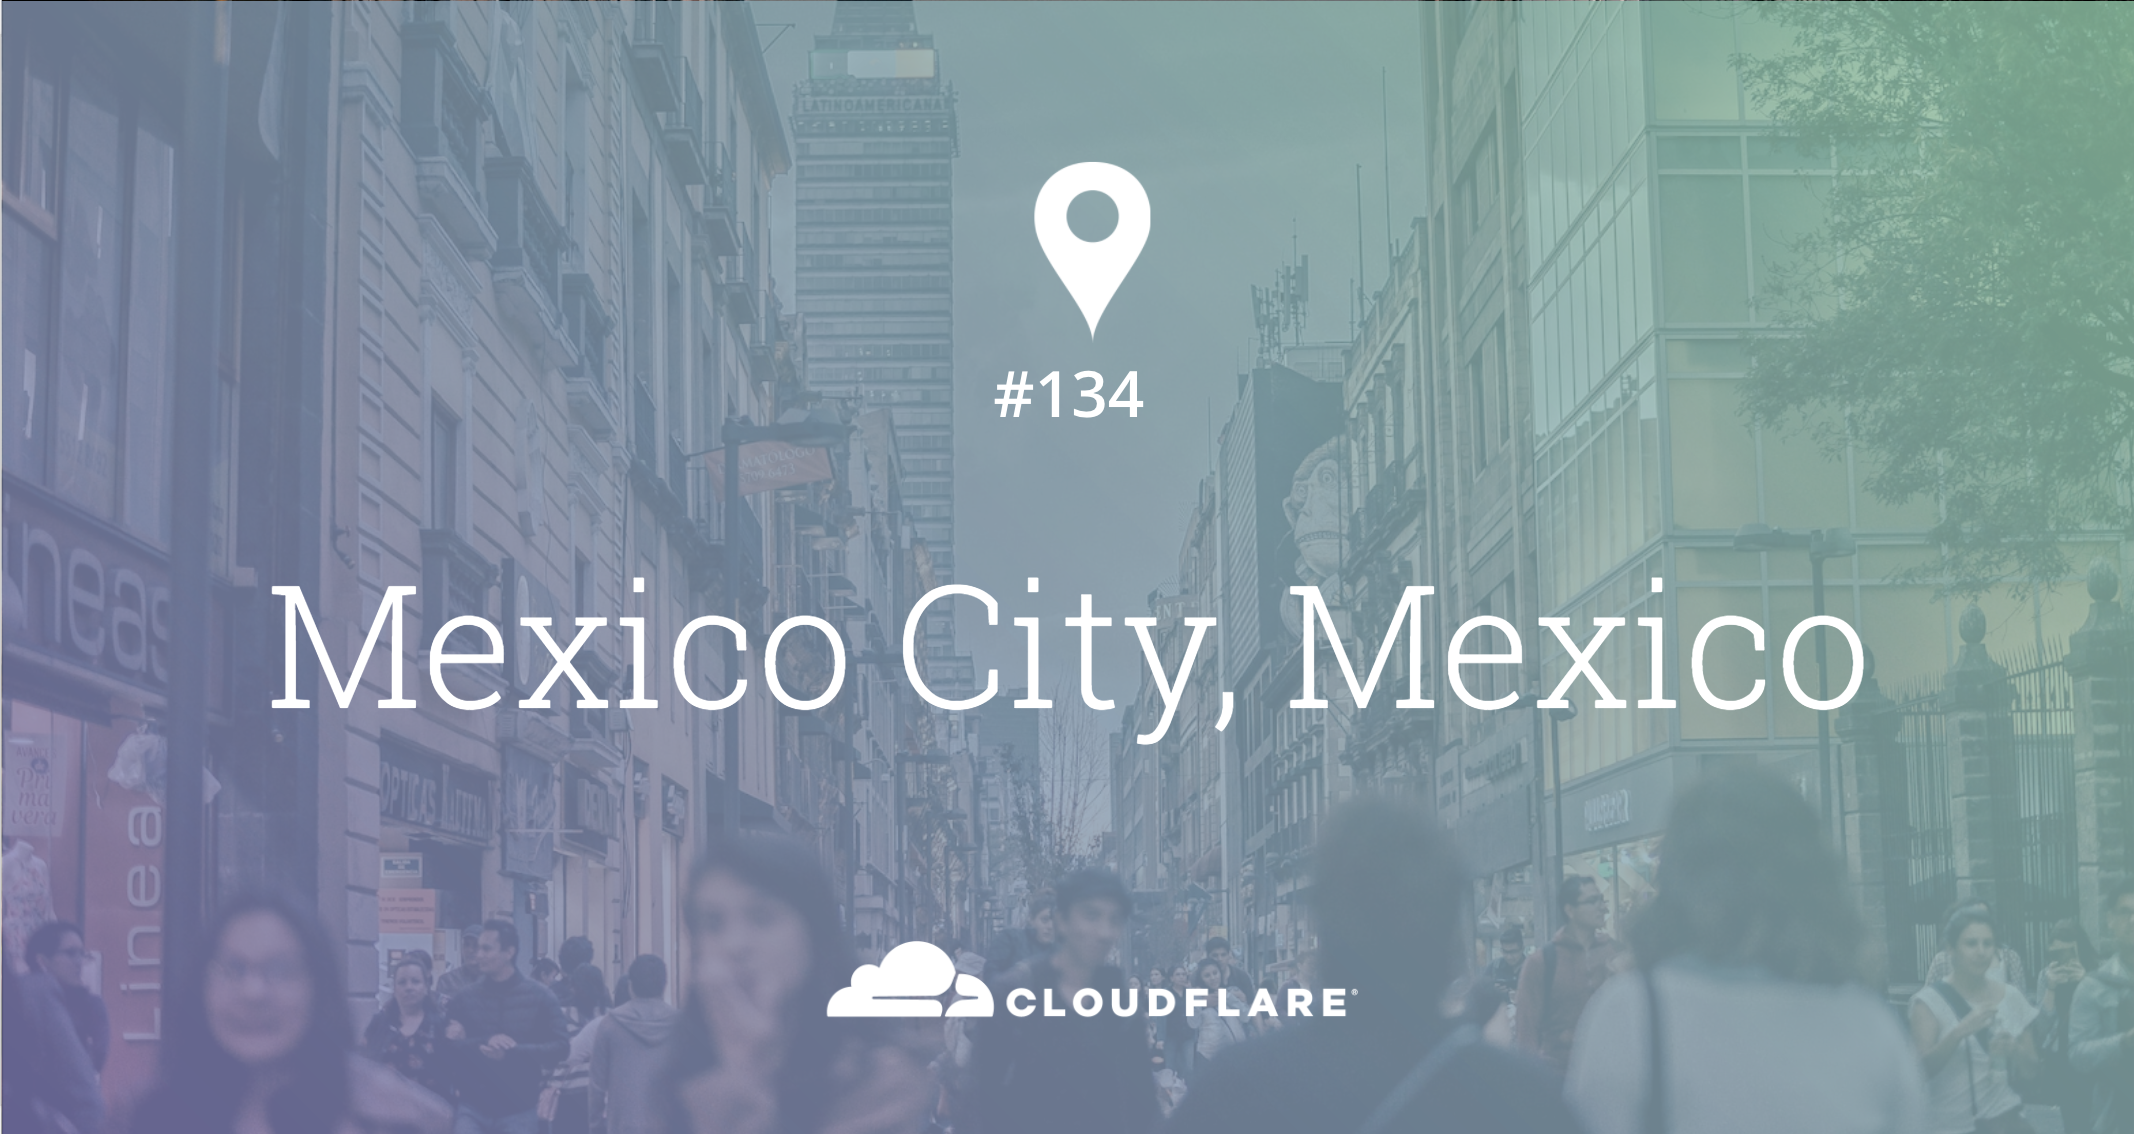 Mexico City, Mexico: Cloudflare Data Center #134